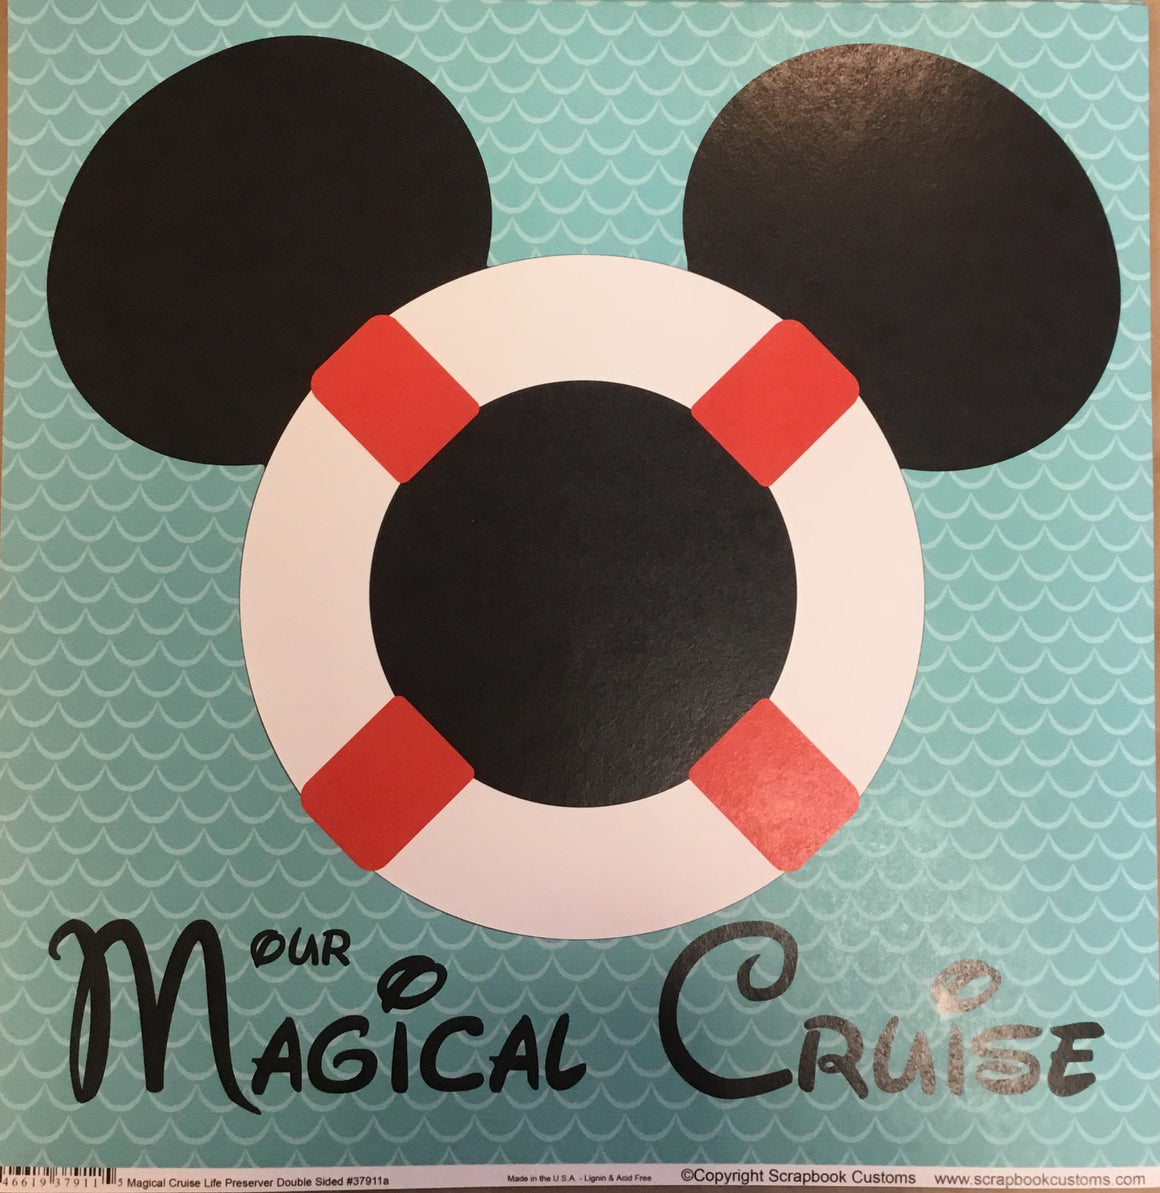 Magical Cruise 12x12 single sheet